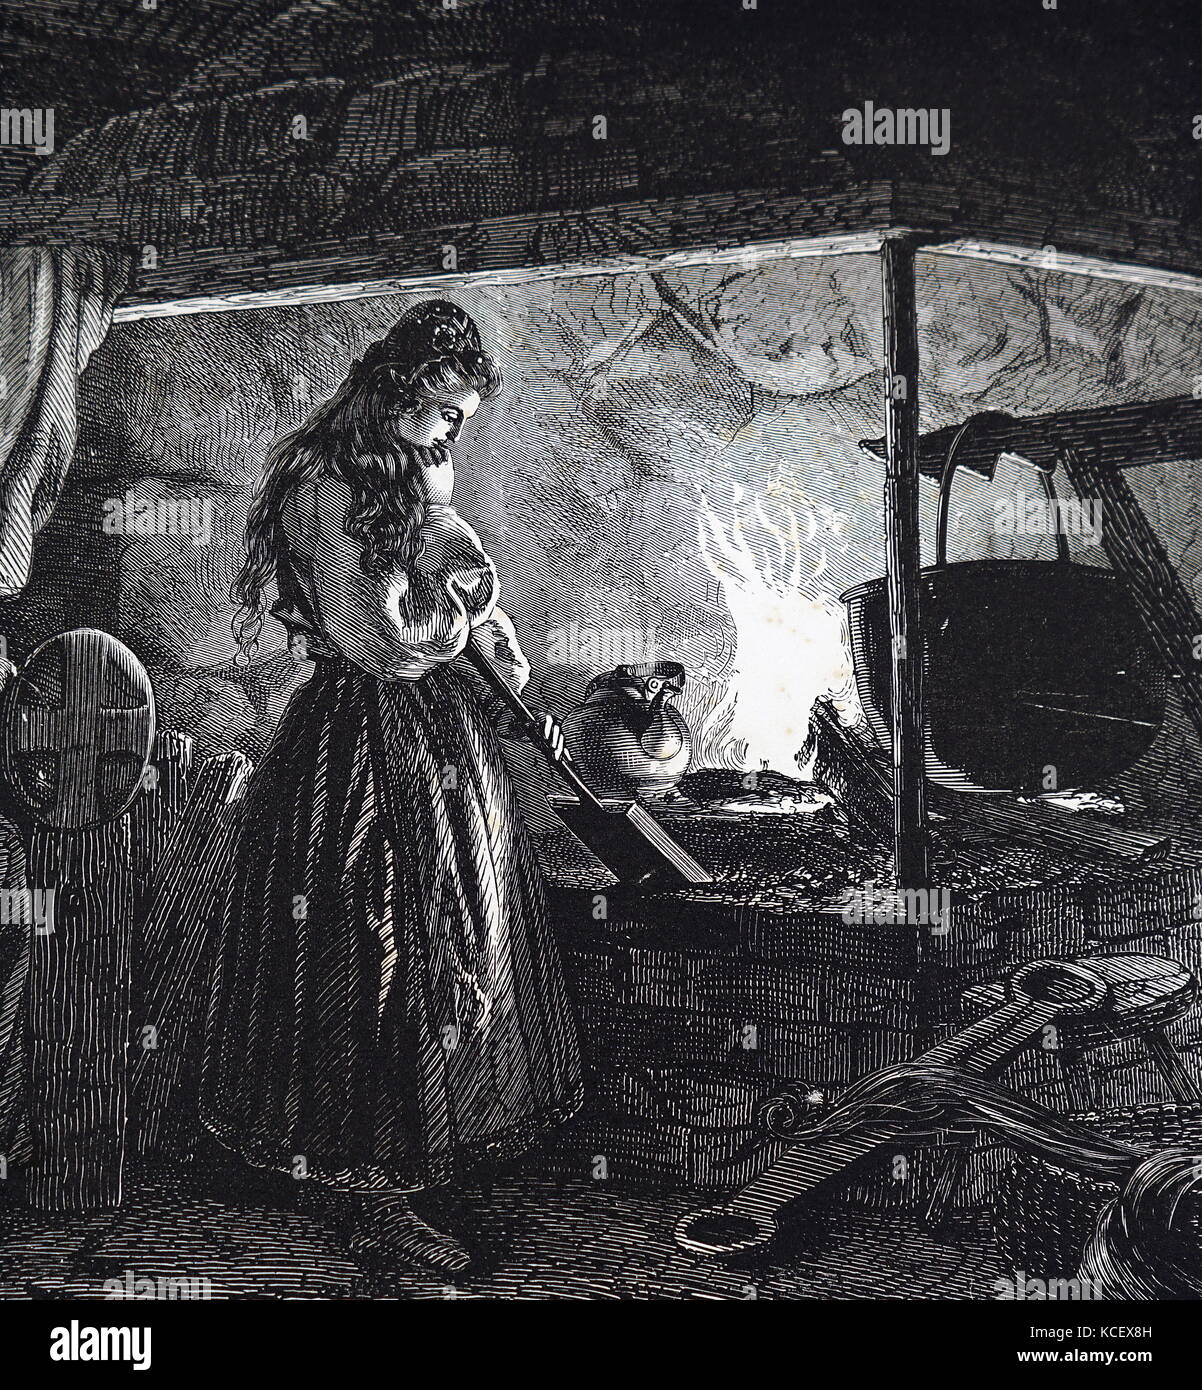 Engraving depicting a young girl heating Gamalost, which translates as 'old cheese', which was a pungent - Stock Image